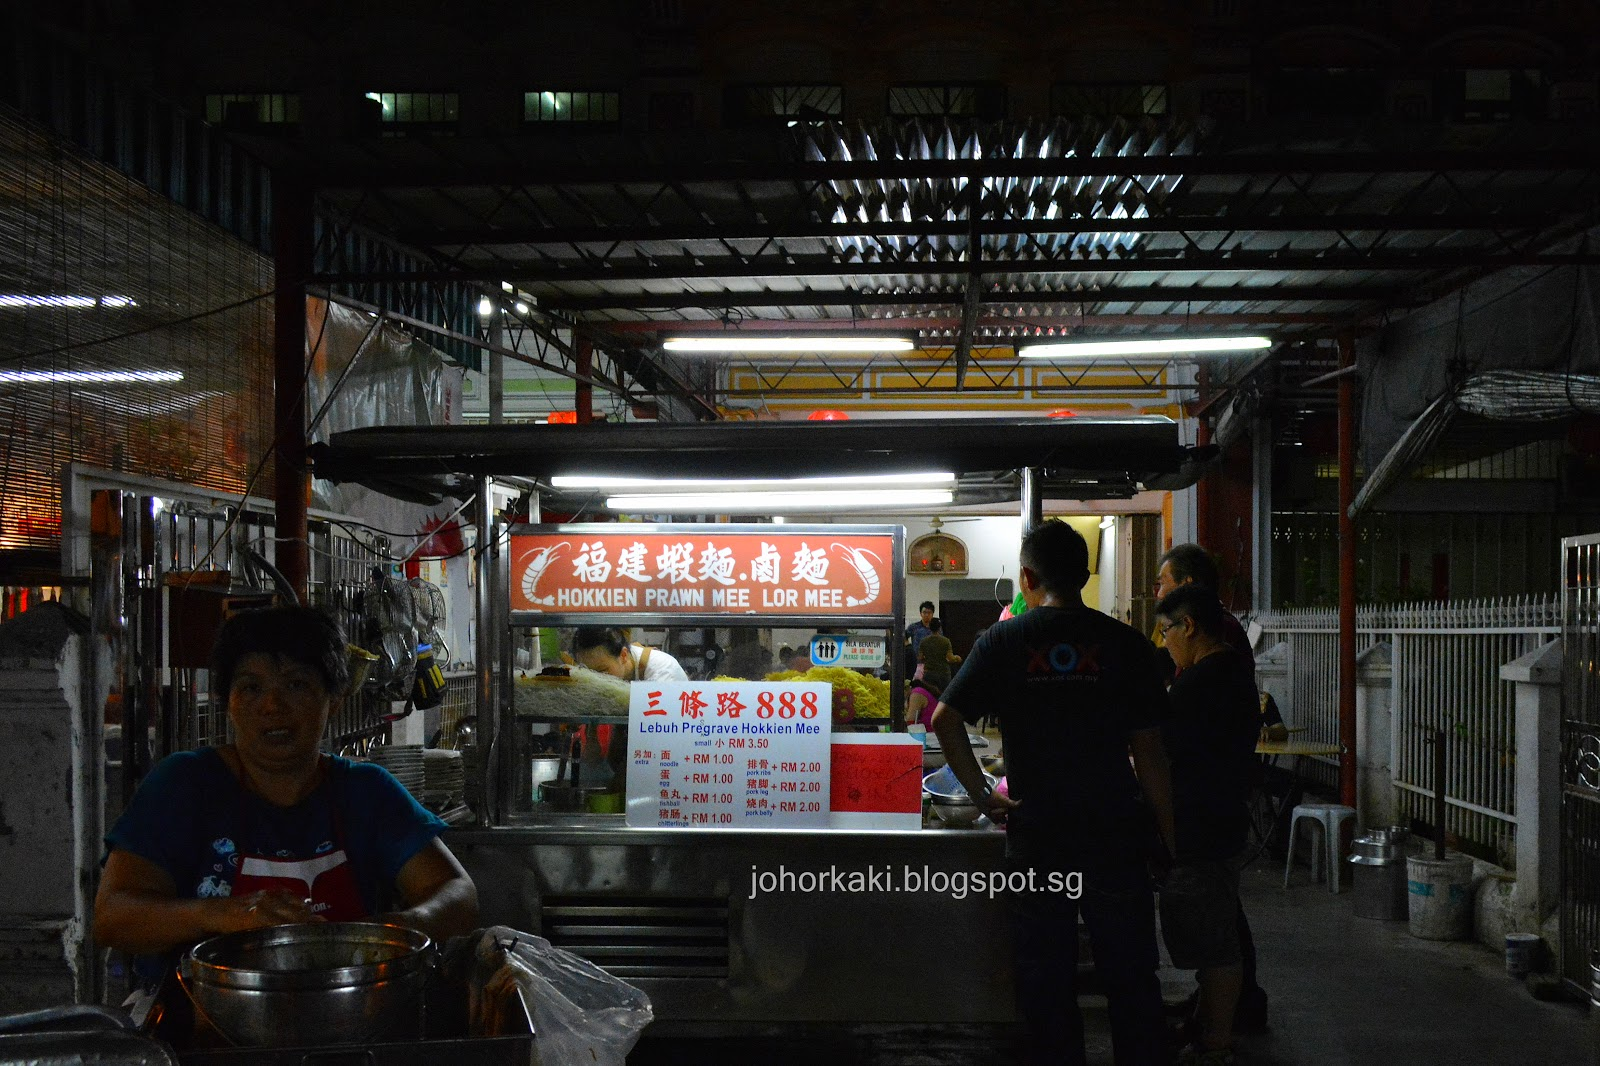 penang dating restaurant Best dining in butterworth, seberang perai district: see 401 tripadvisor traveller reviews of 74 butterworth restaurants and search by cuisine, price, location, and more.